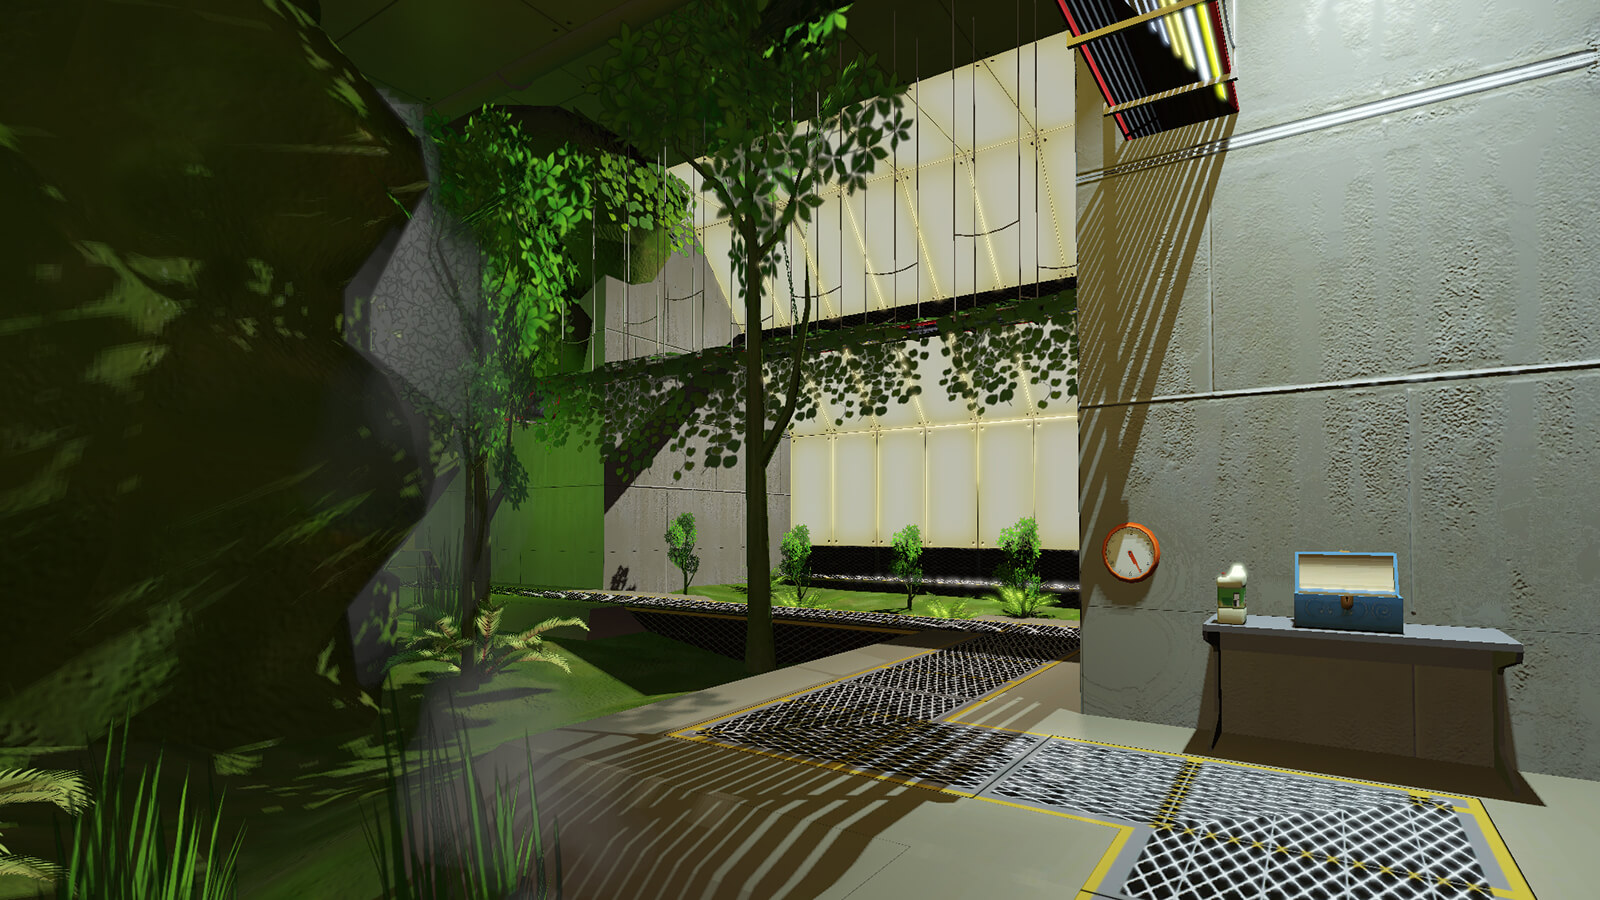 3D rendering of an industrial, bare-walled interior outfitted with a greenhouse for trees and other plant life.